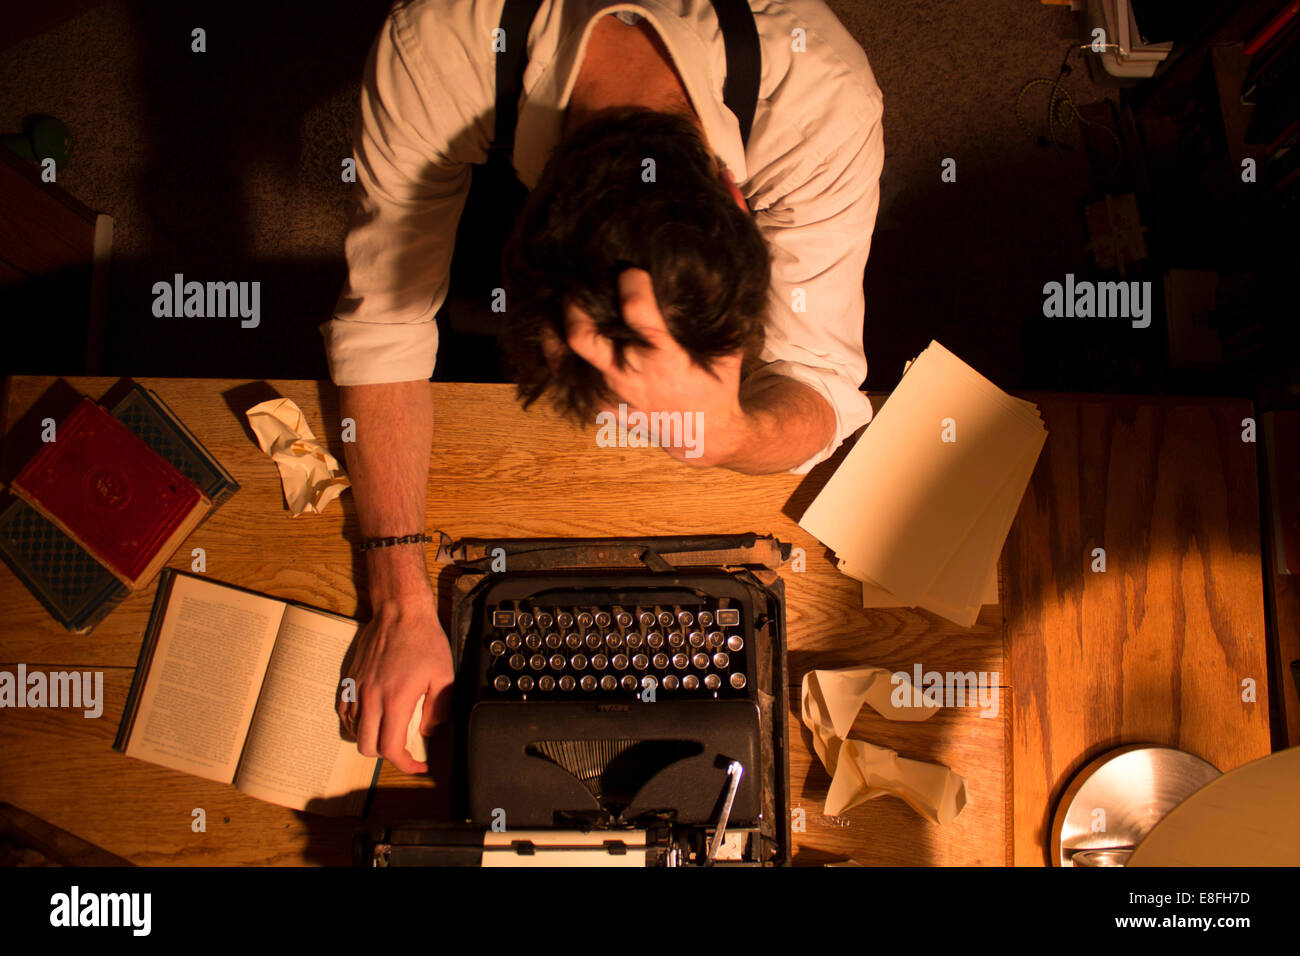 Man sitting at desk with writers block - Stock Image